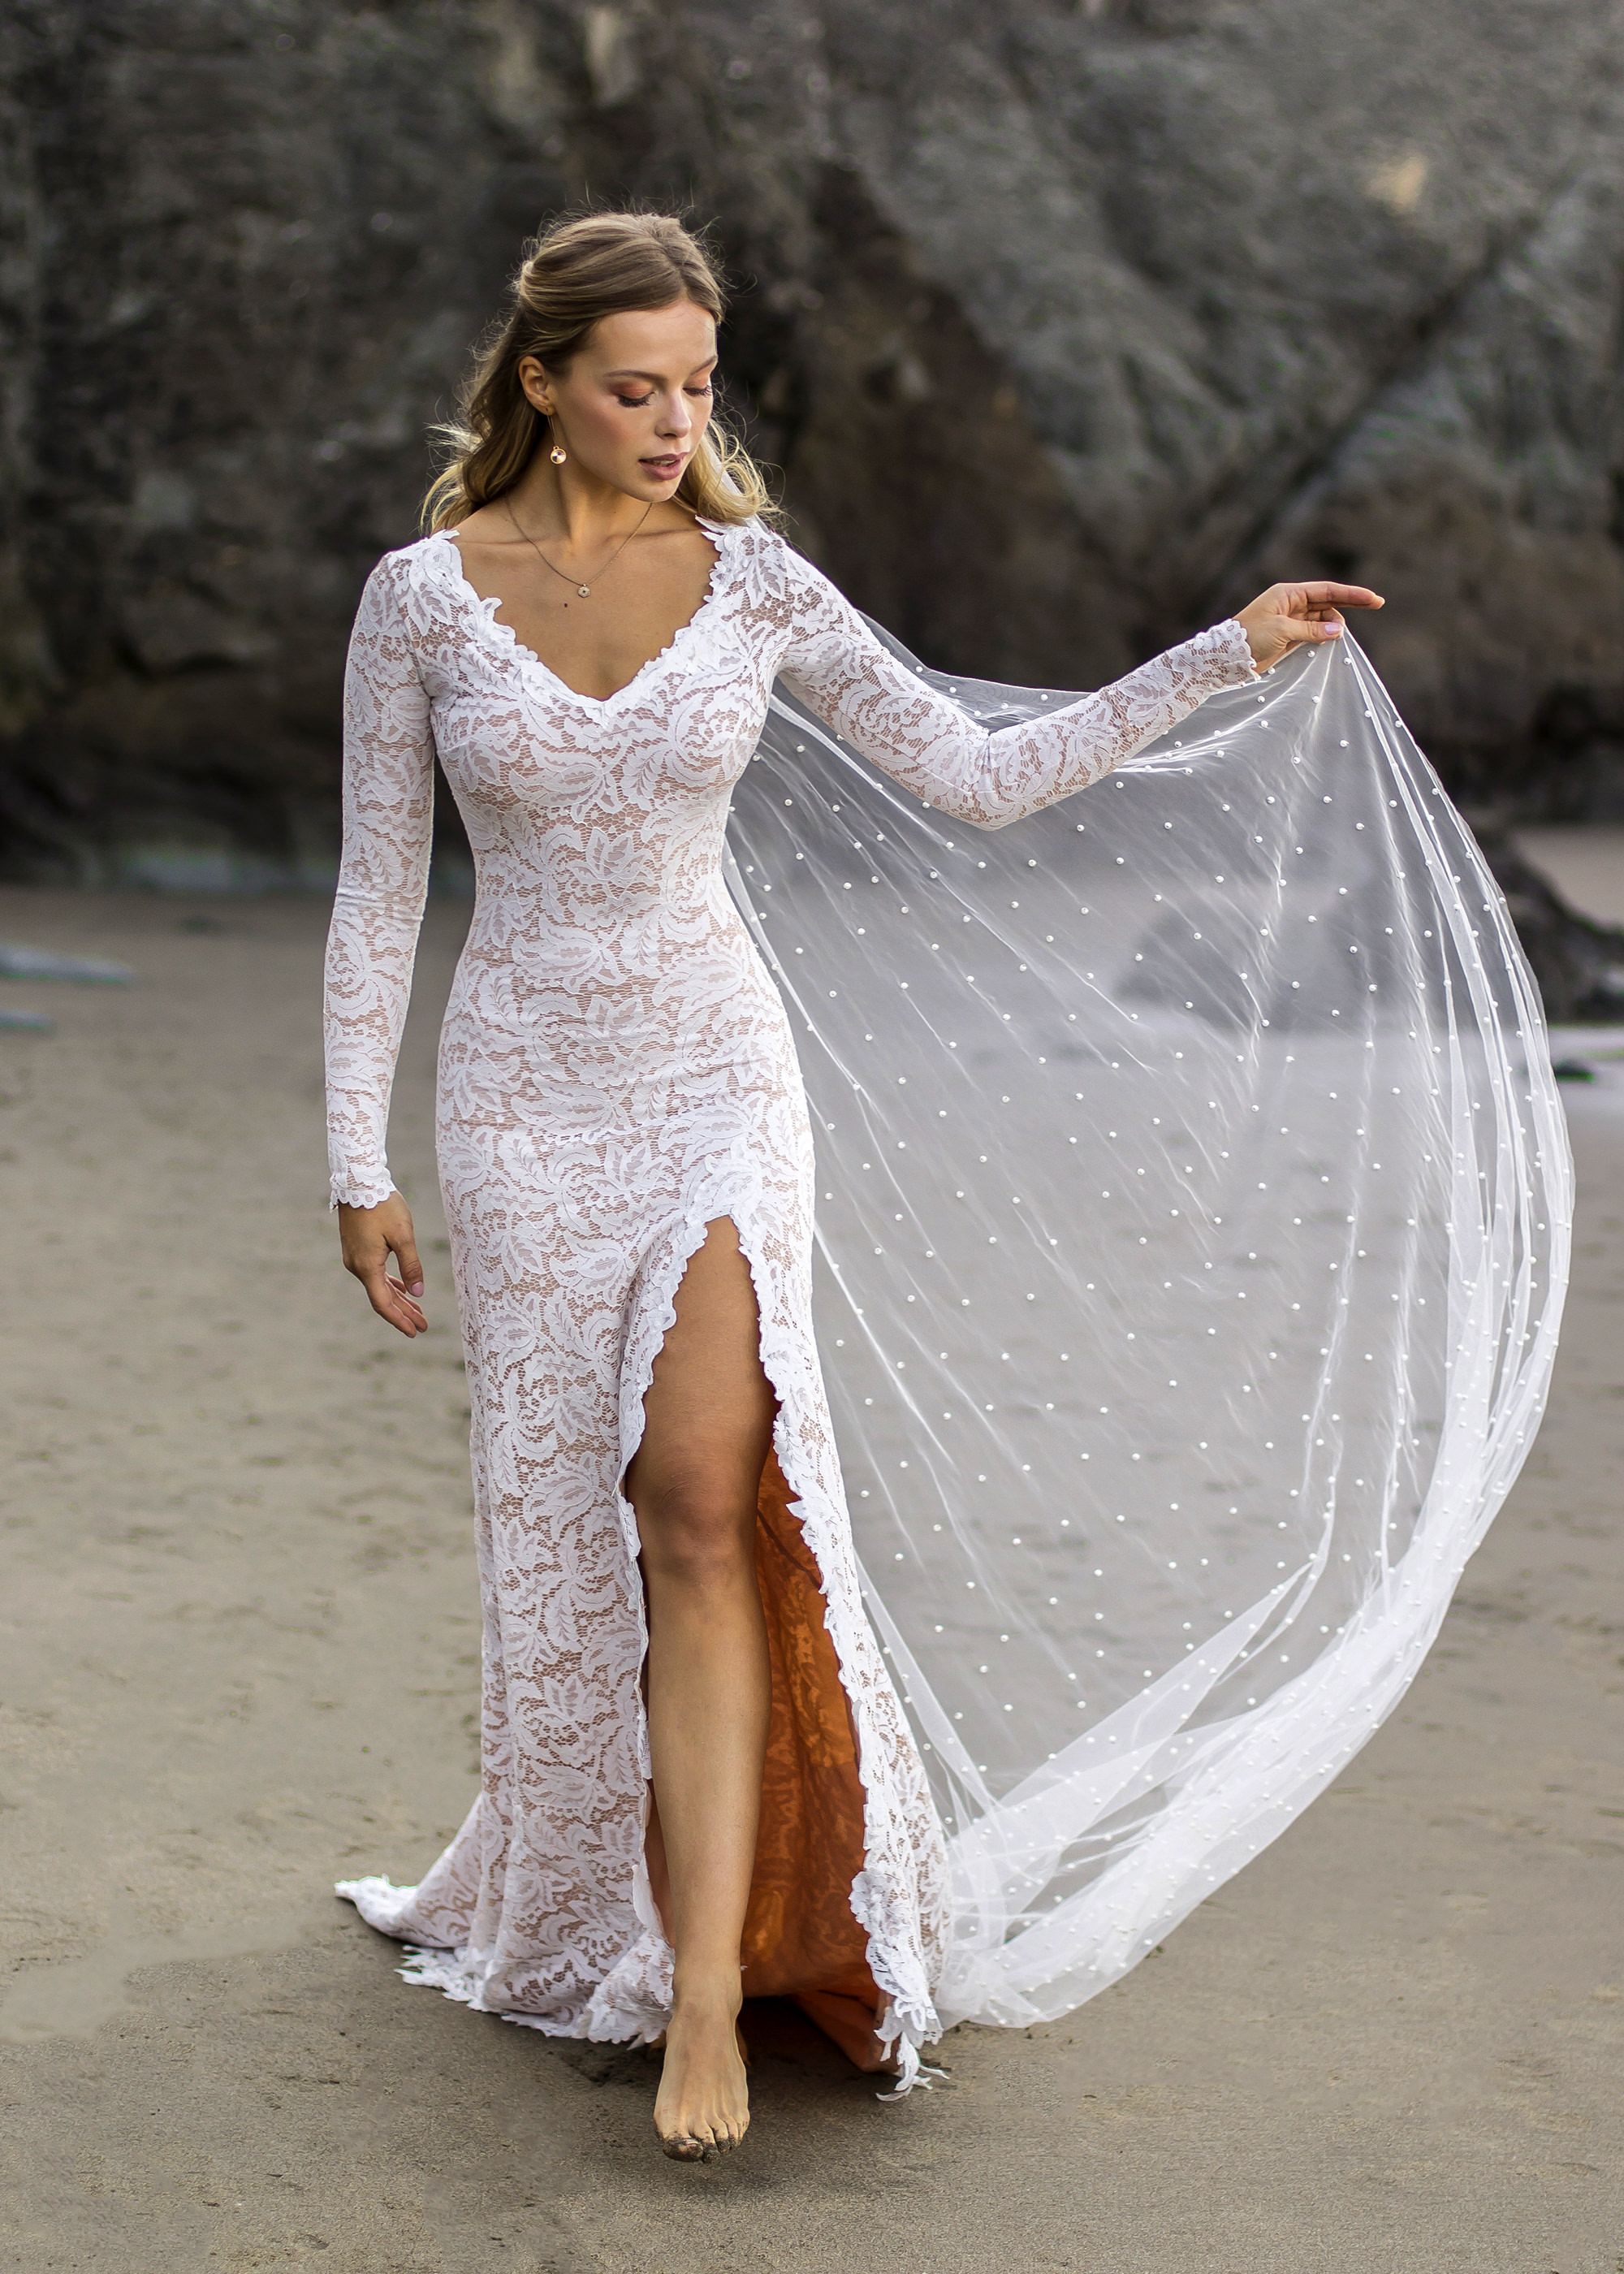 You Ll Look Like A Modern Aphrodite With This Signature Wear Your